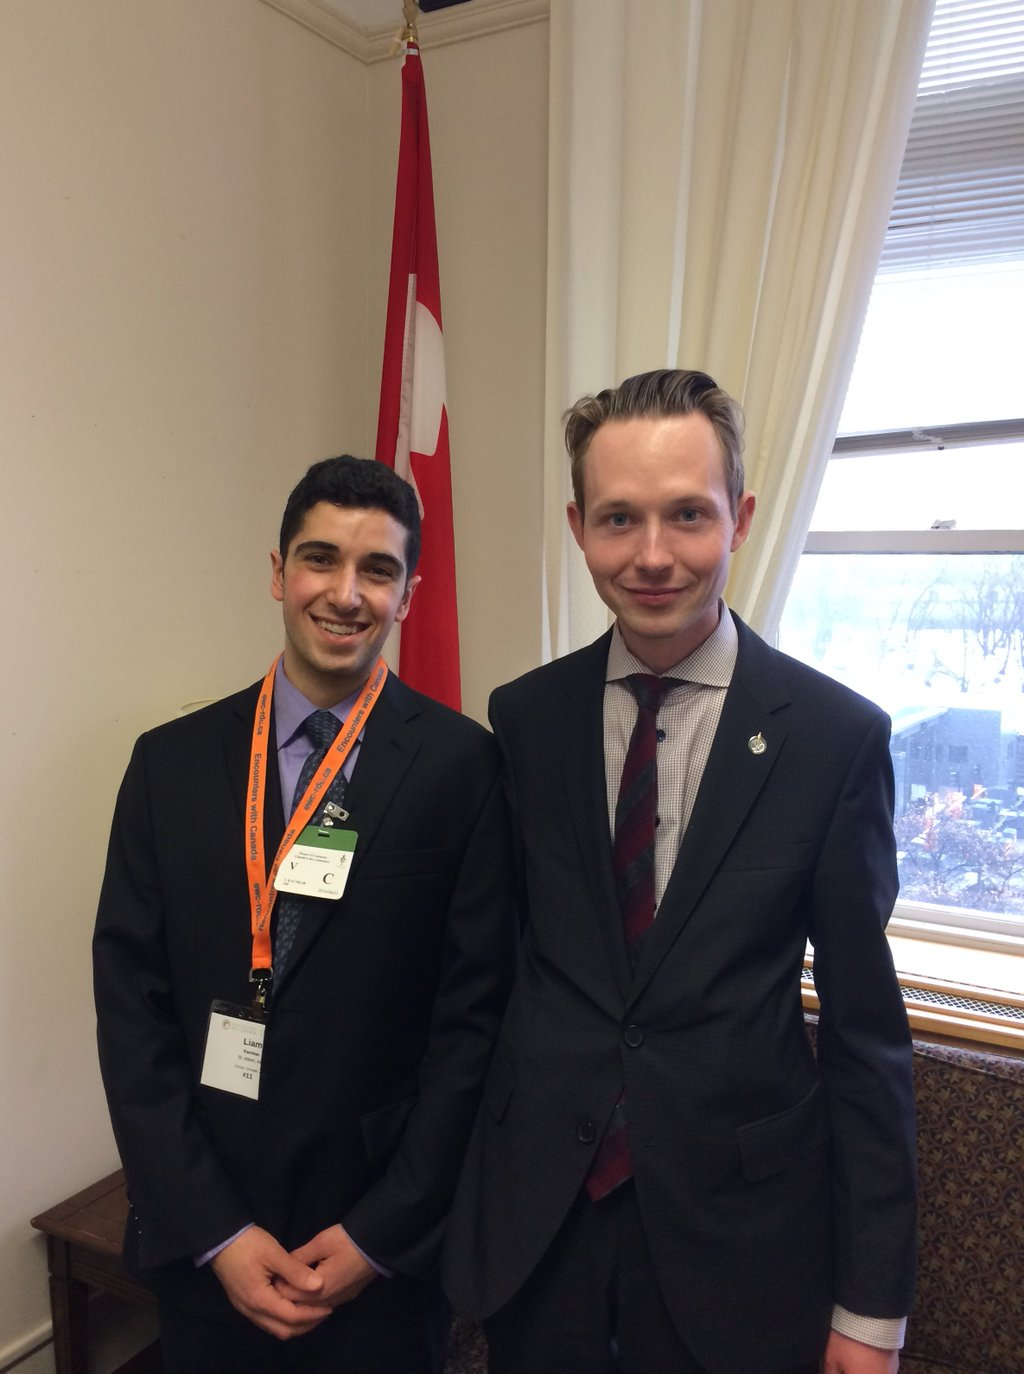 With Paul Kane student Liam Kachkar. Liam was in Ottawa as part of the Encounters with Canada program.